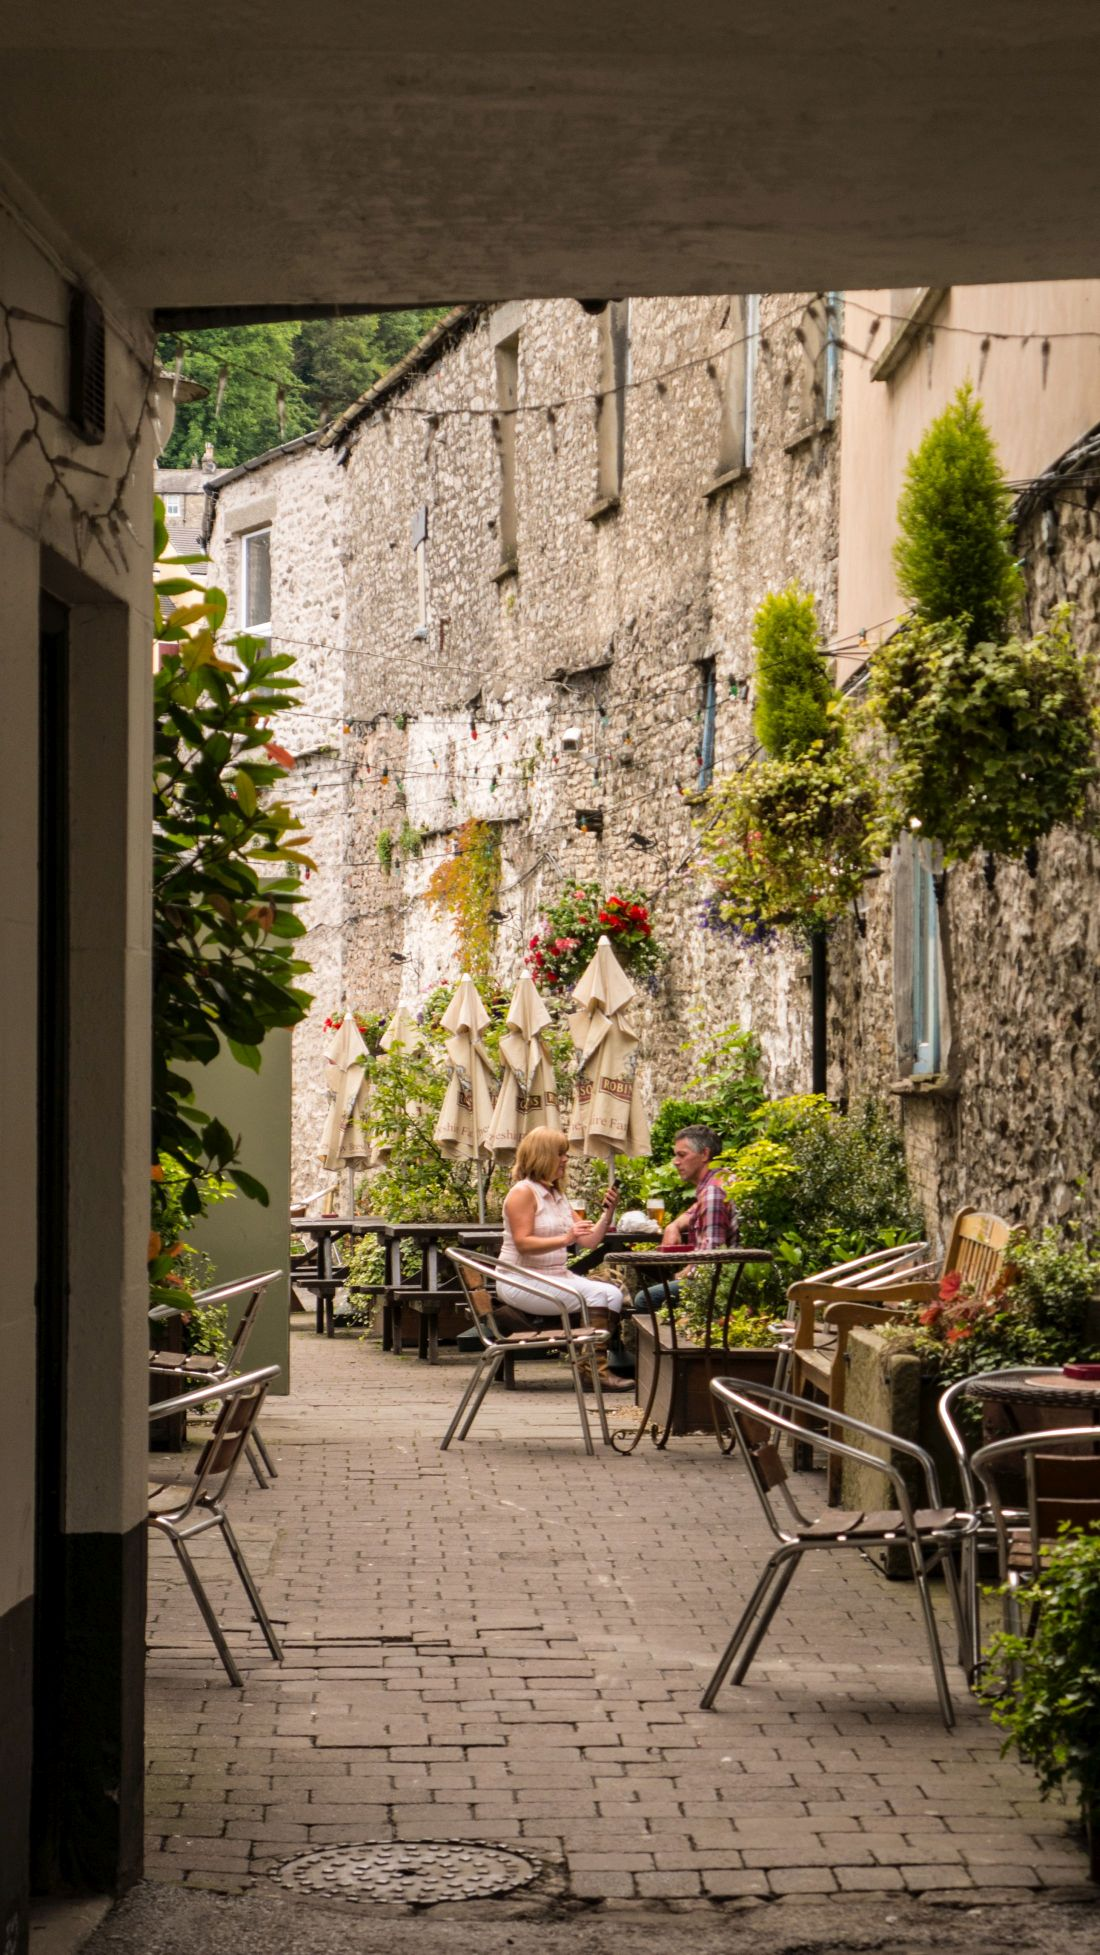 Smokehouse Yard is an attractive, historic Kendal yard for eating and drinking. Explore Kendal's famous 18th century yards on your next visit.